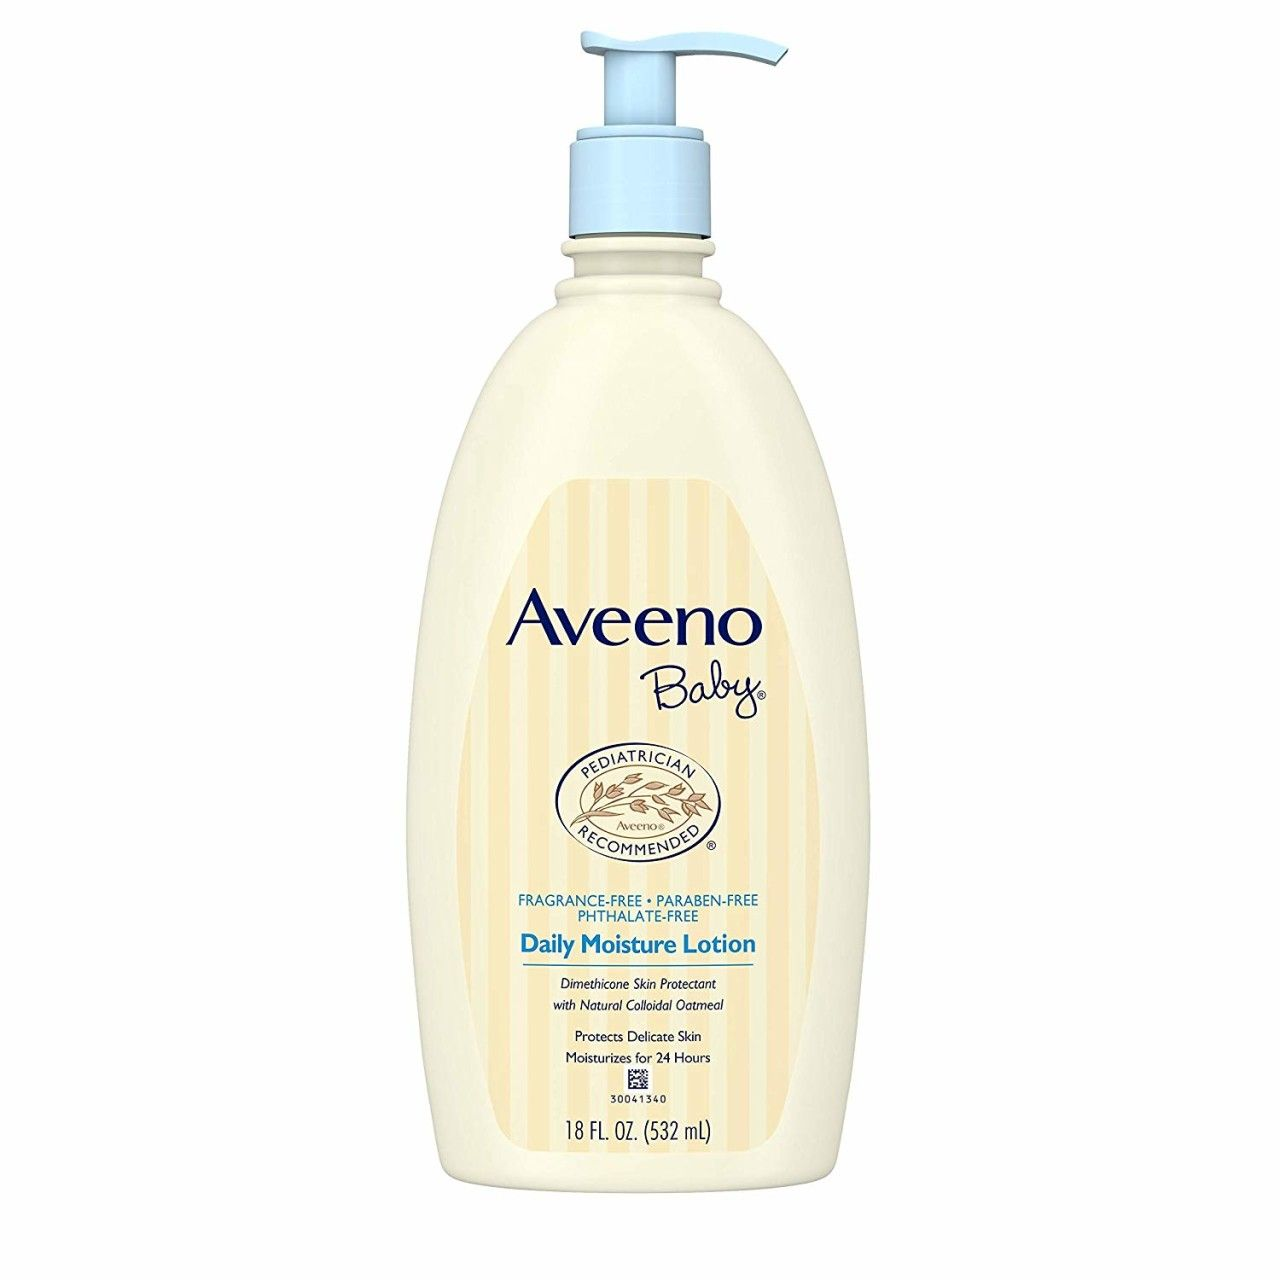 Aveeno Baby Daily Moisture Lotion 18 Oz As Low As 6 03 Become A Coupon Queen Aveeno Baby Best Baby Lotion Baby Lotion